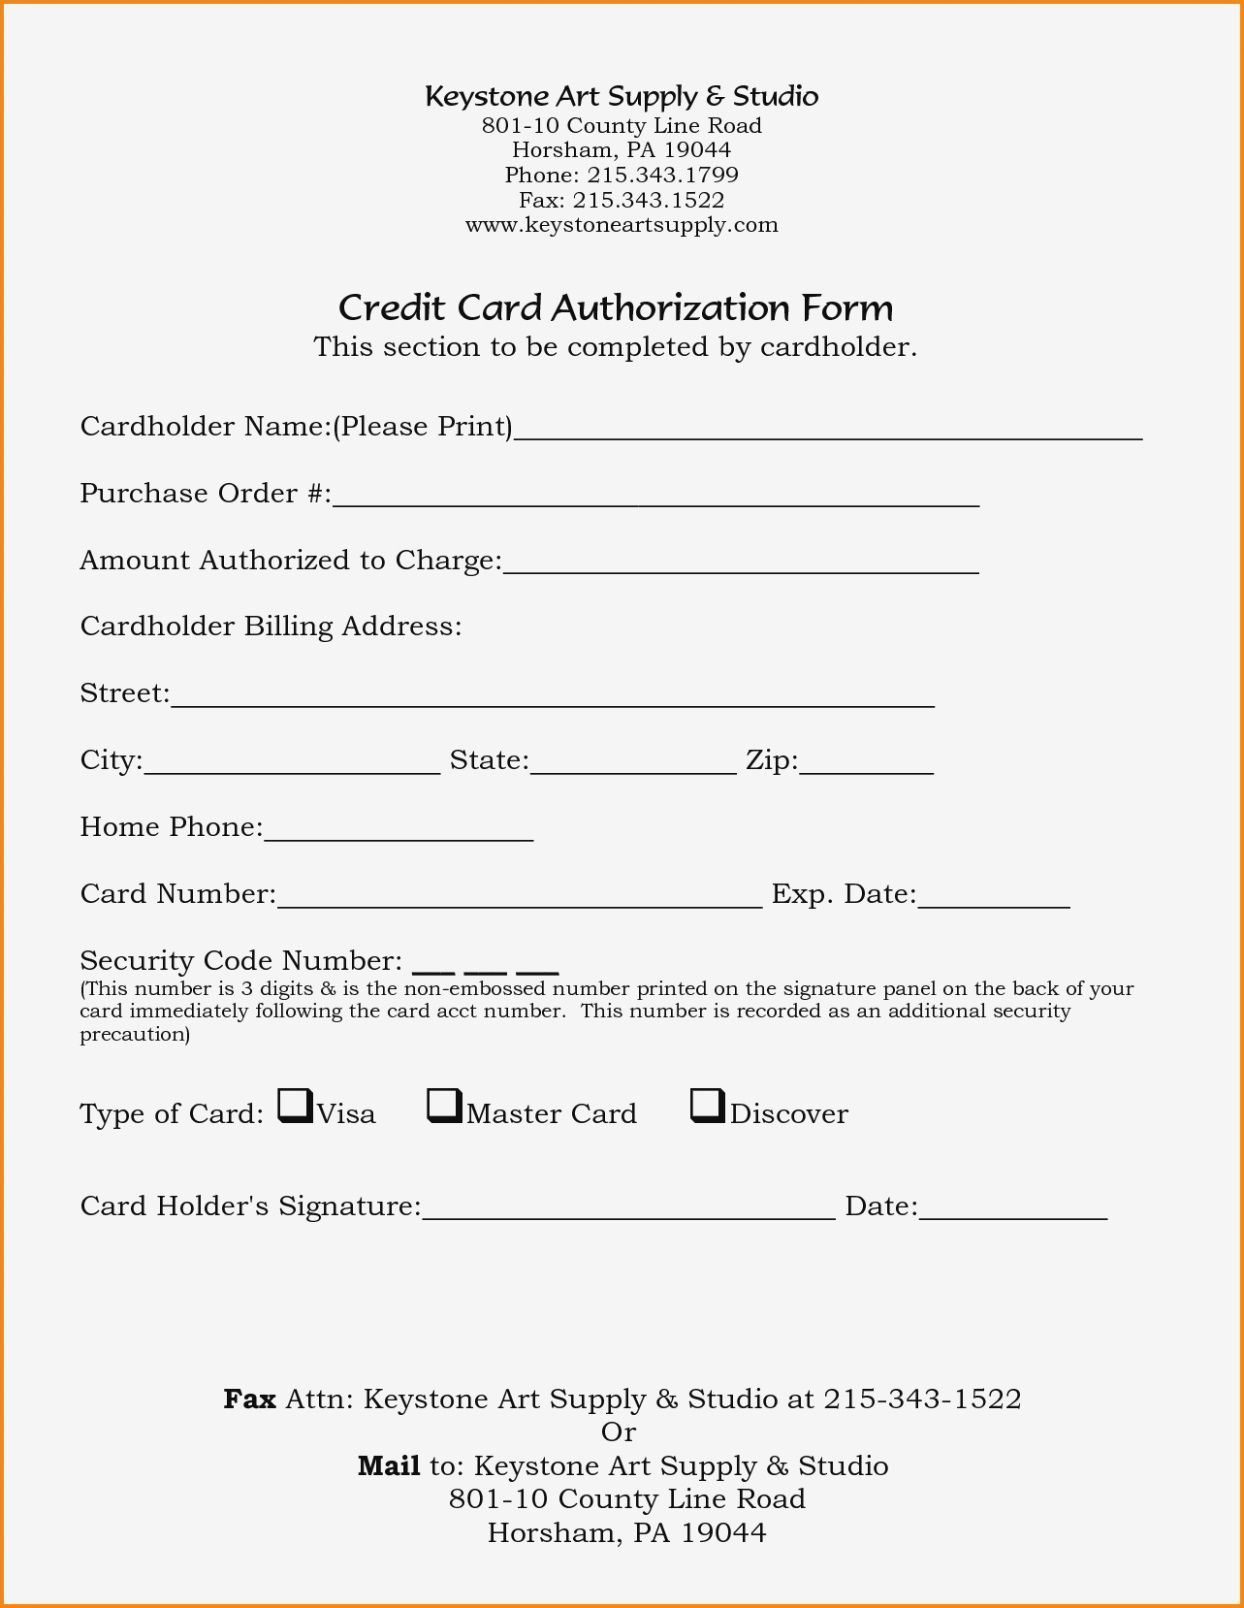 005 Marvelou Credit Card Authorization Template Idea  Form For Travel Agency Free Download Google DocFull